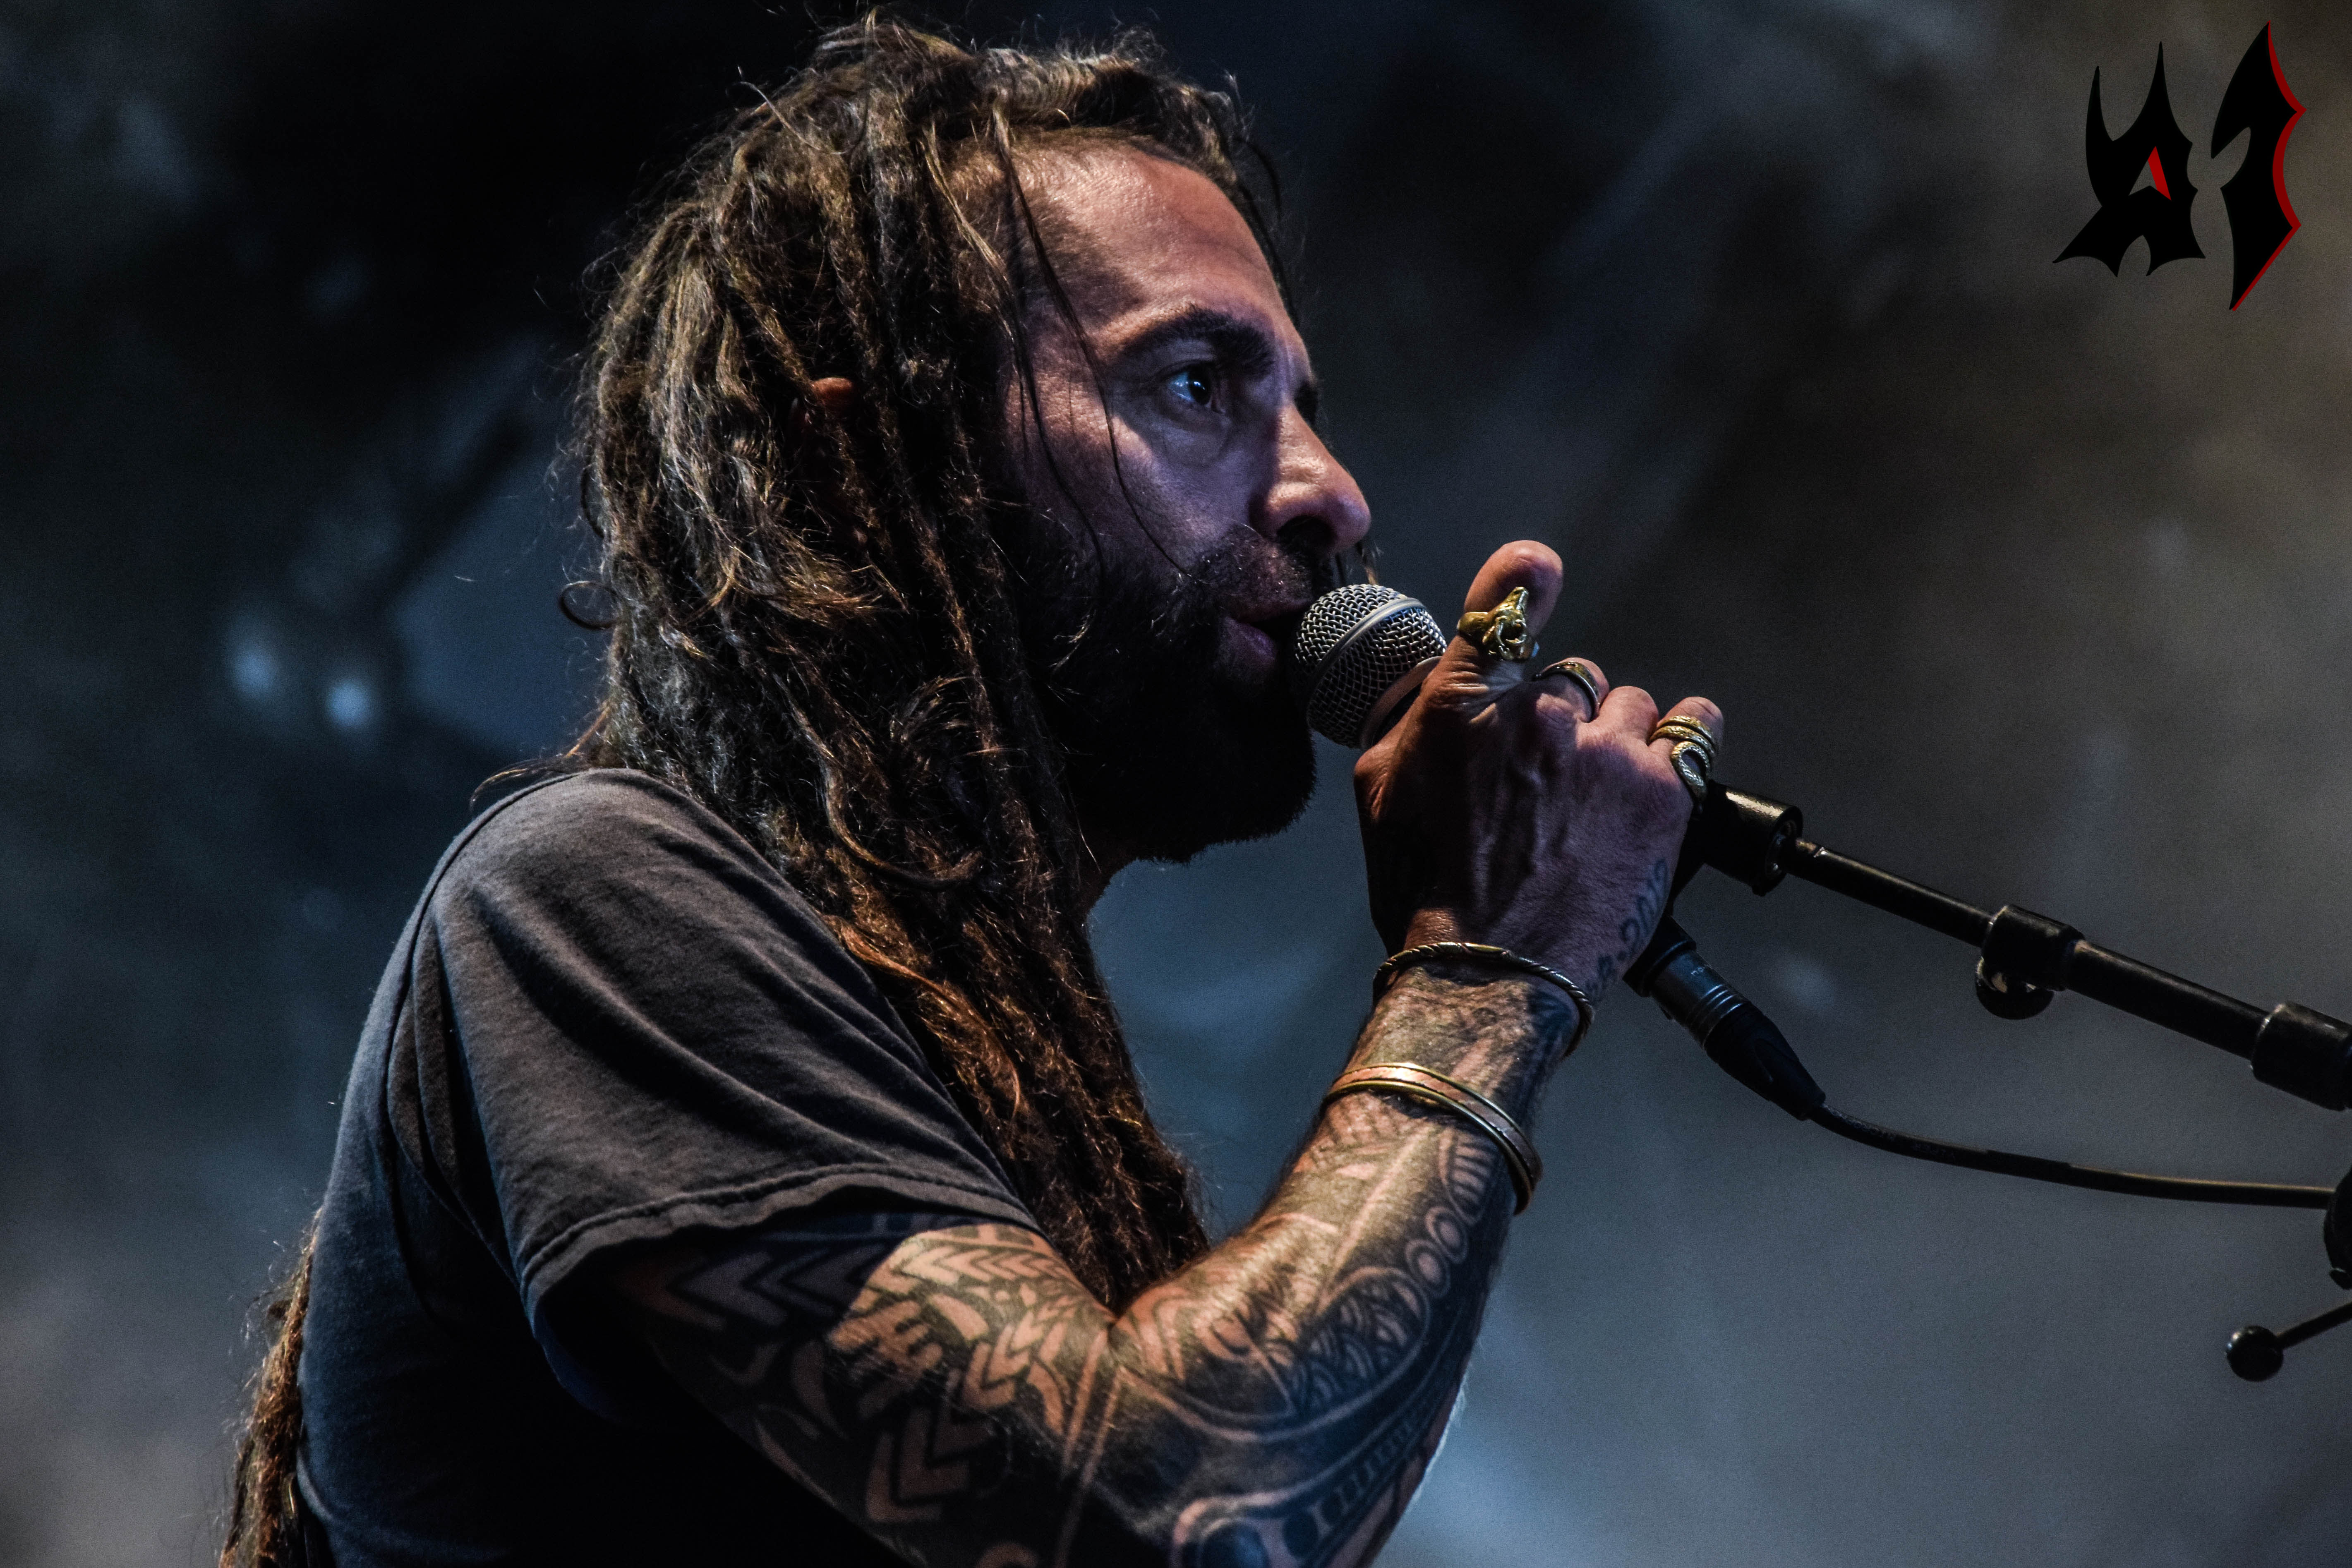 Hellfest - Day 1 - Dopethrone 18